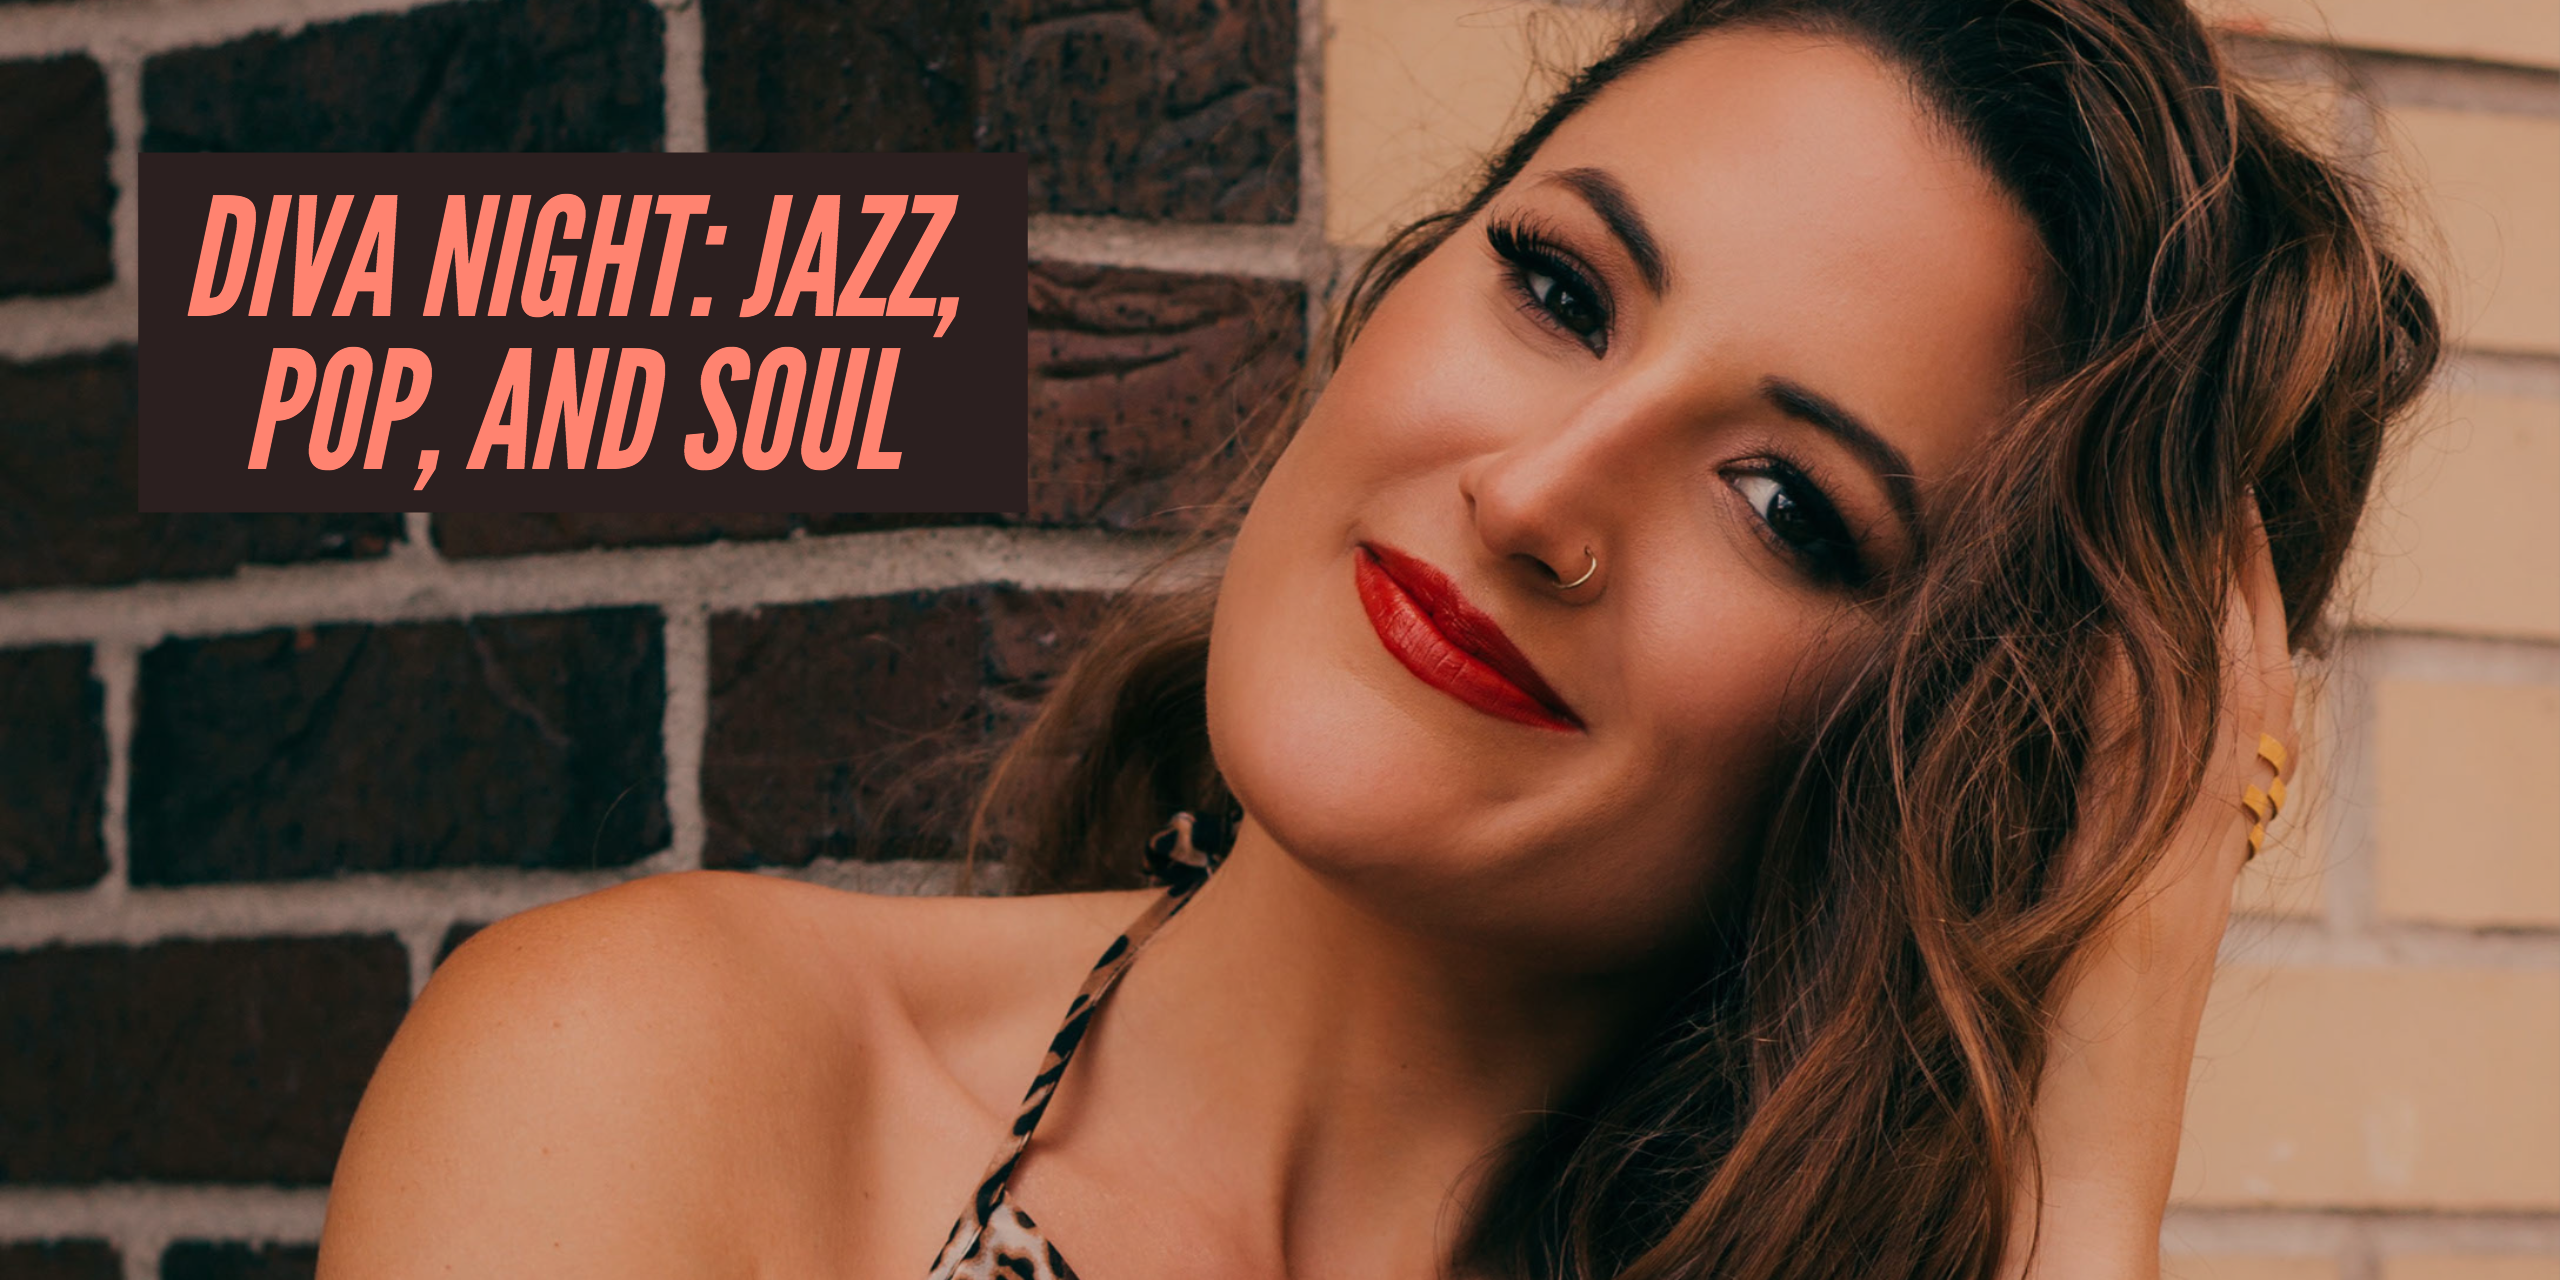 Diva Night: Jazz, Pop and Soul